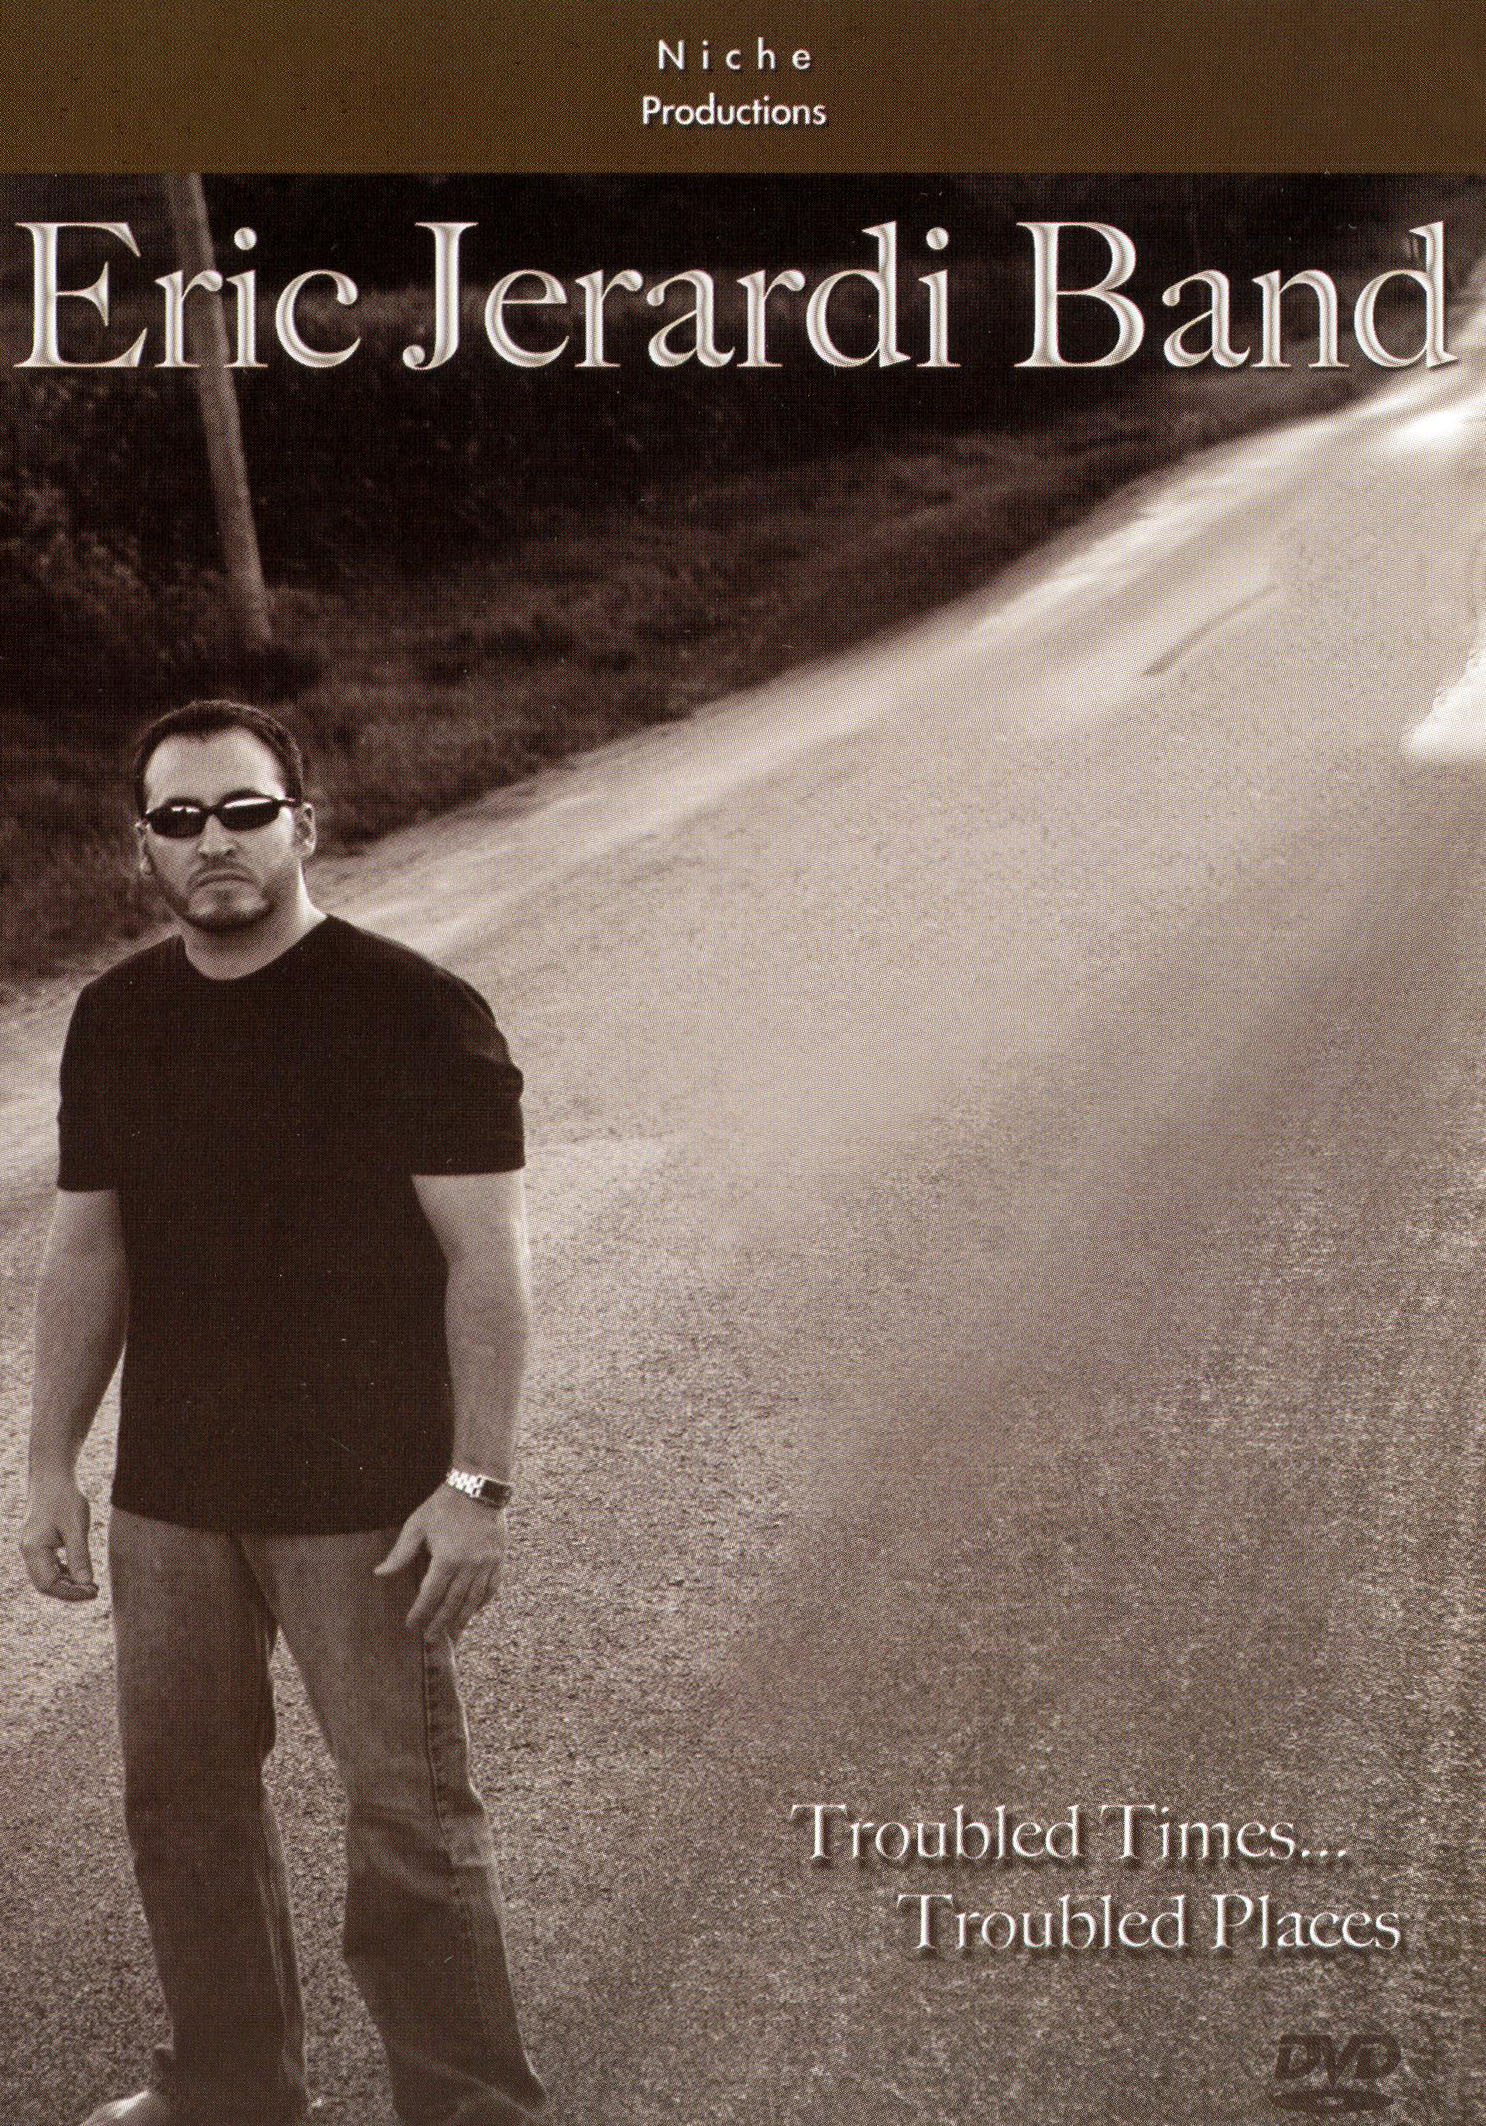 Eric Jerardi Band: Troubled Places, Troubled Times